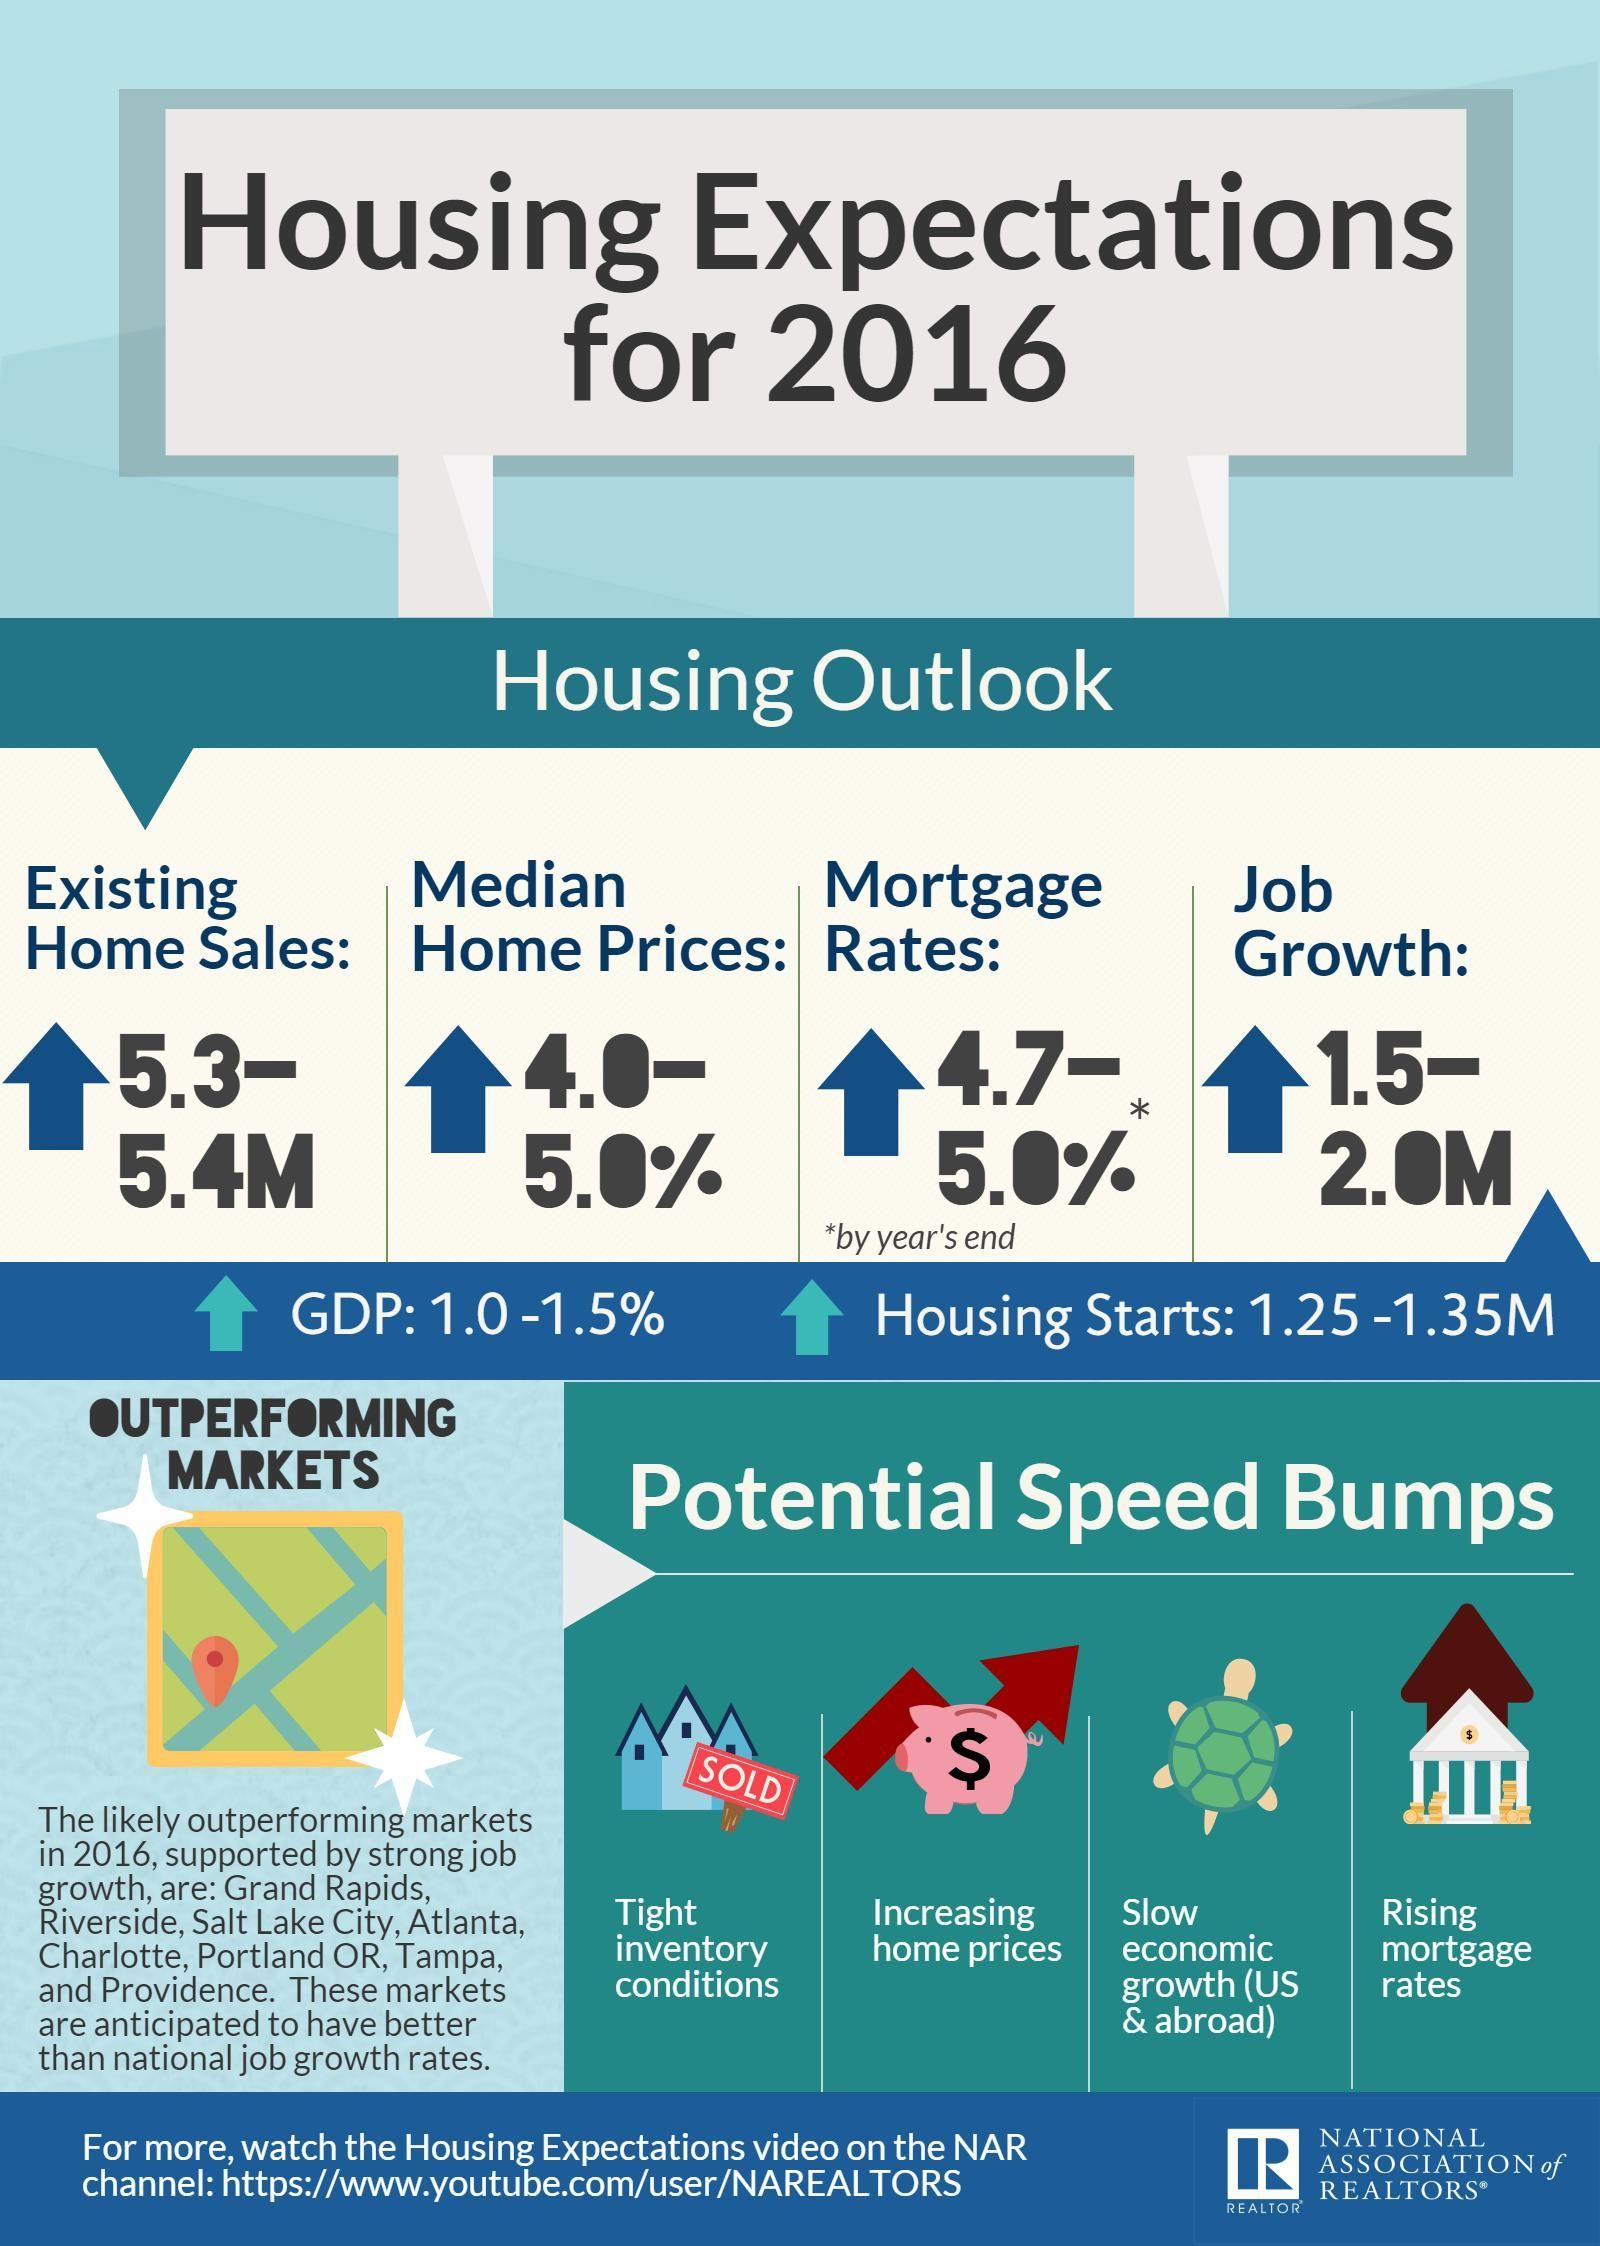 Nar forecast modest increase in home sales expected in